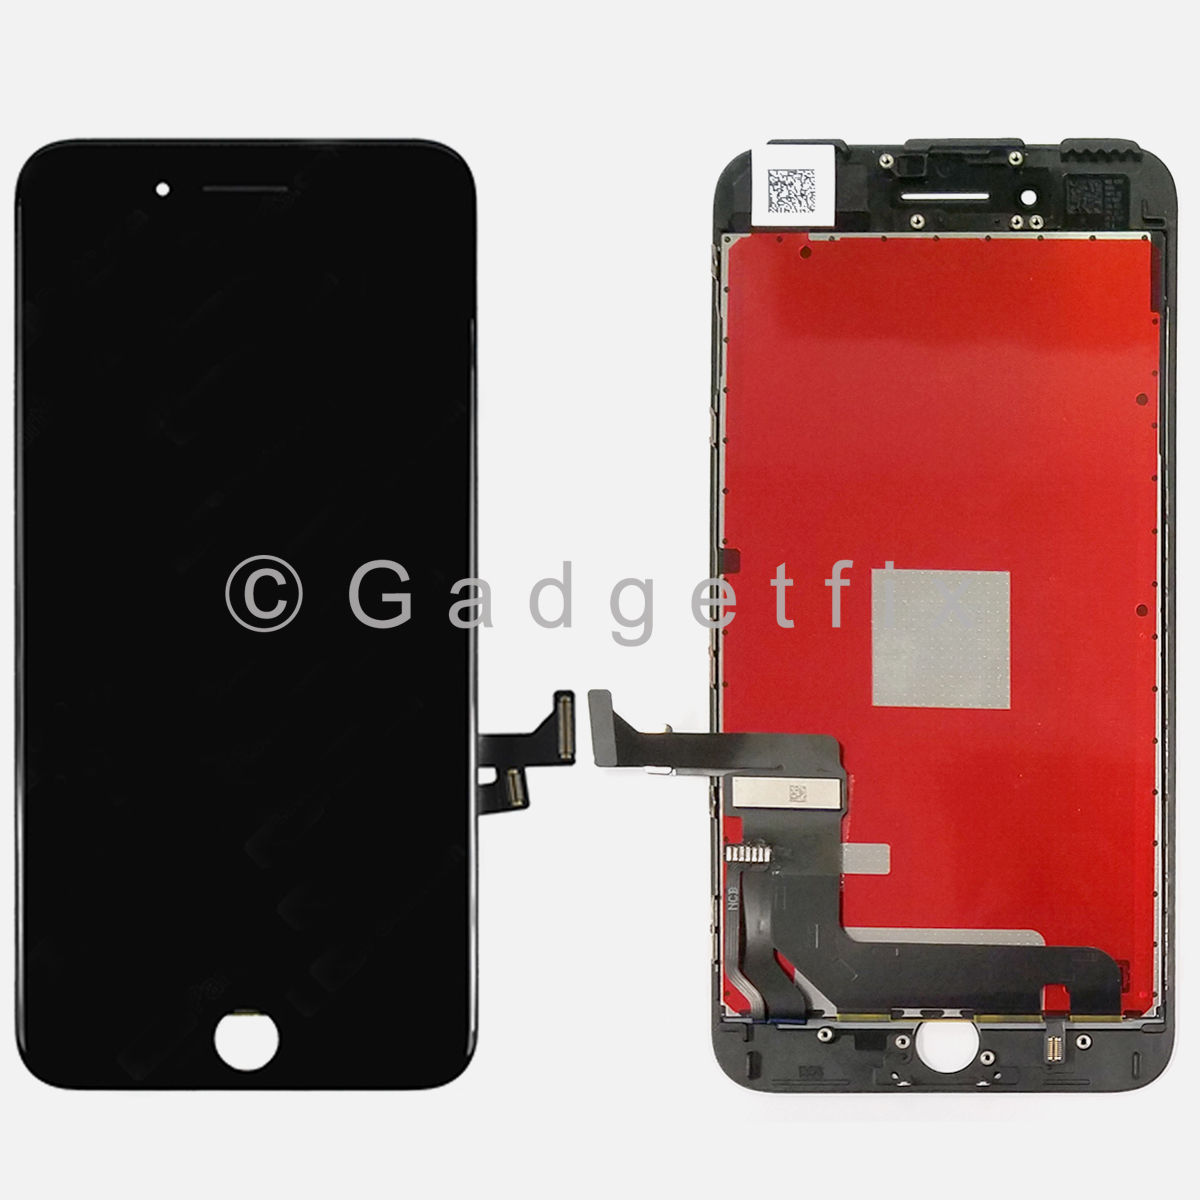 Black iPhone 7 Plus LCD Screen Display Touch Screen Digitizer Panel + Frame